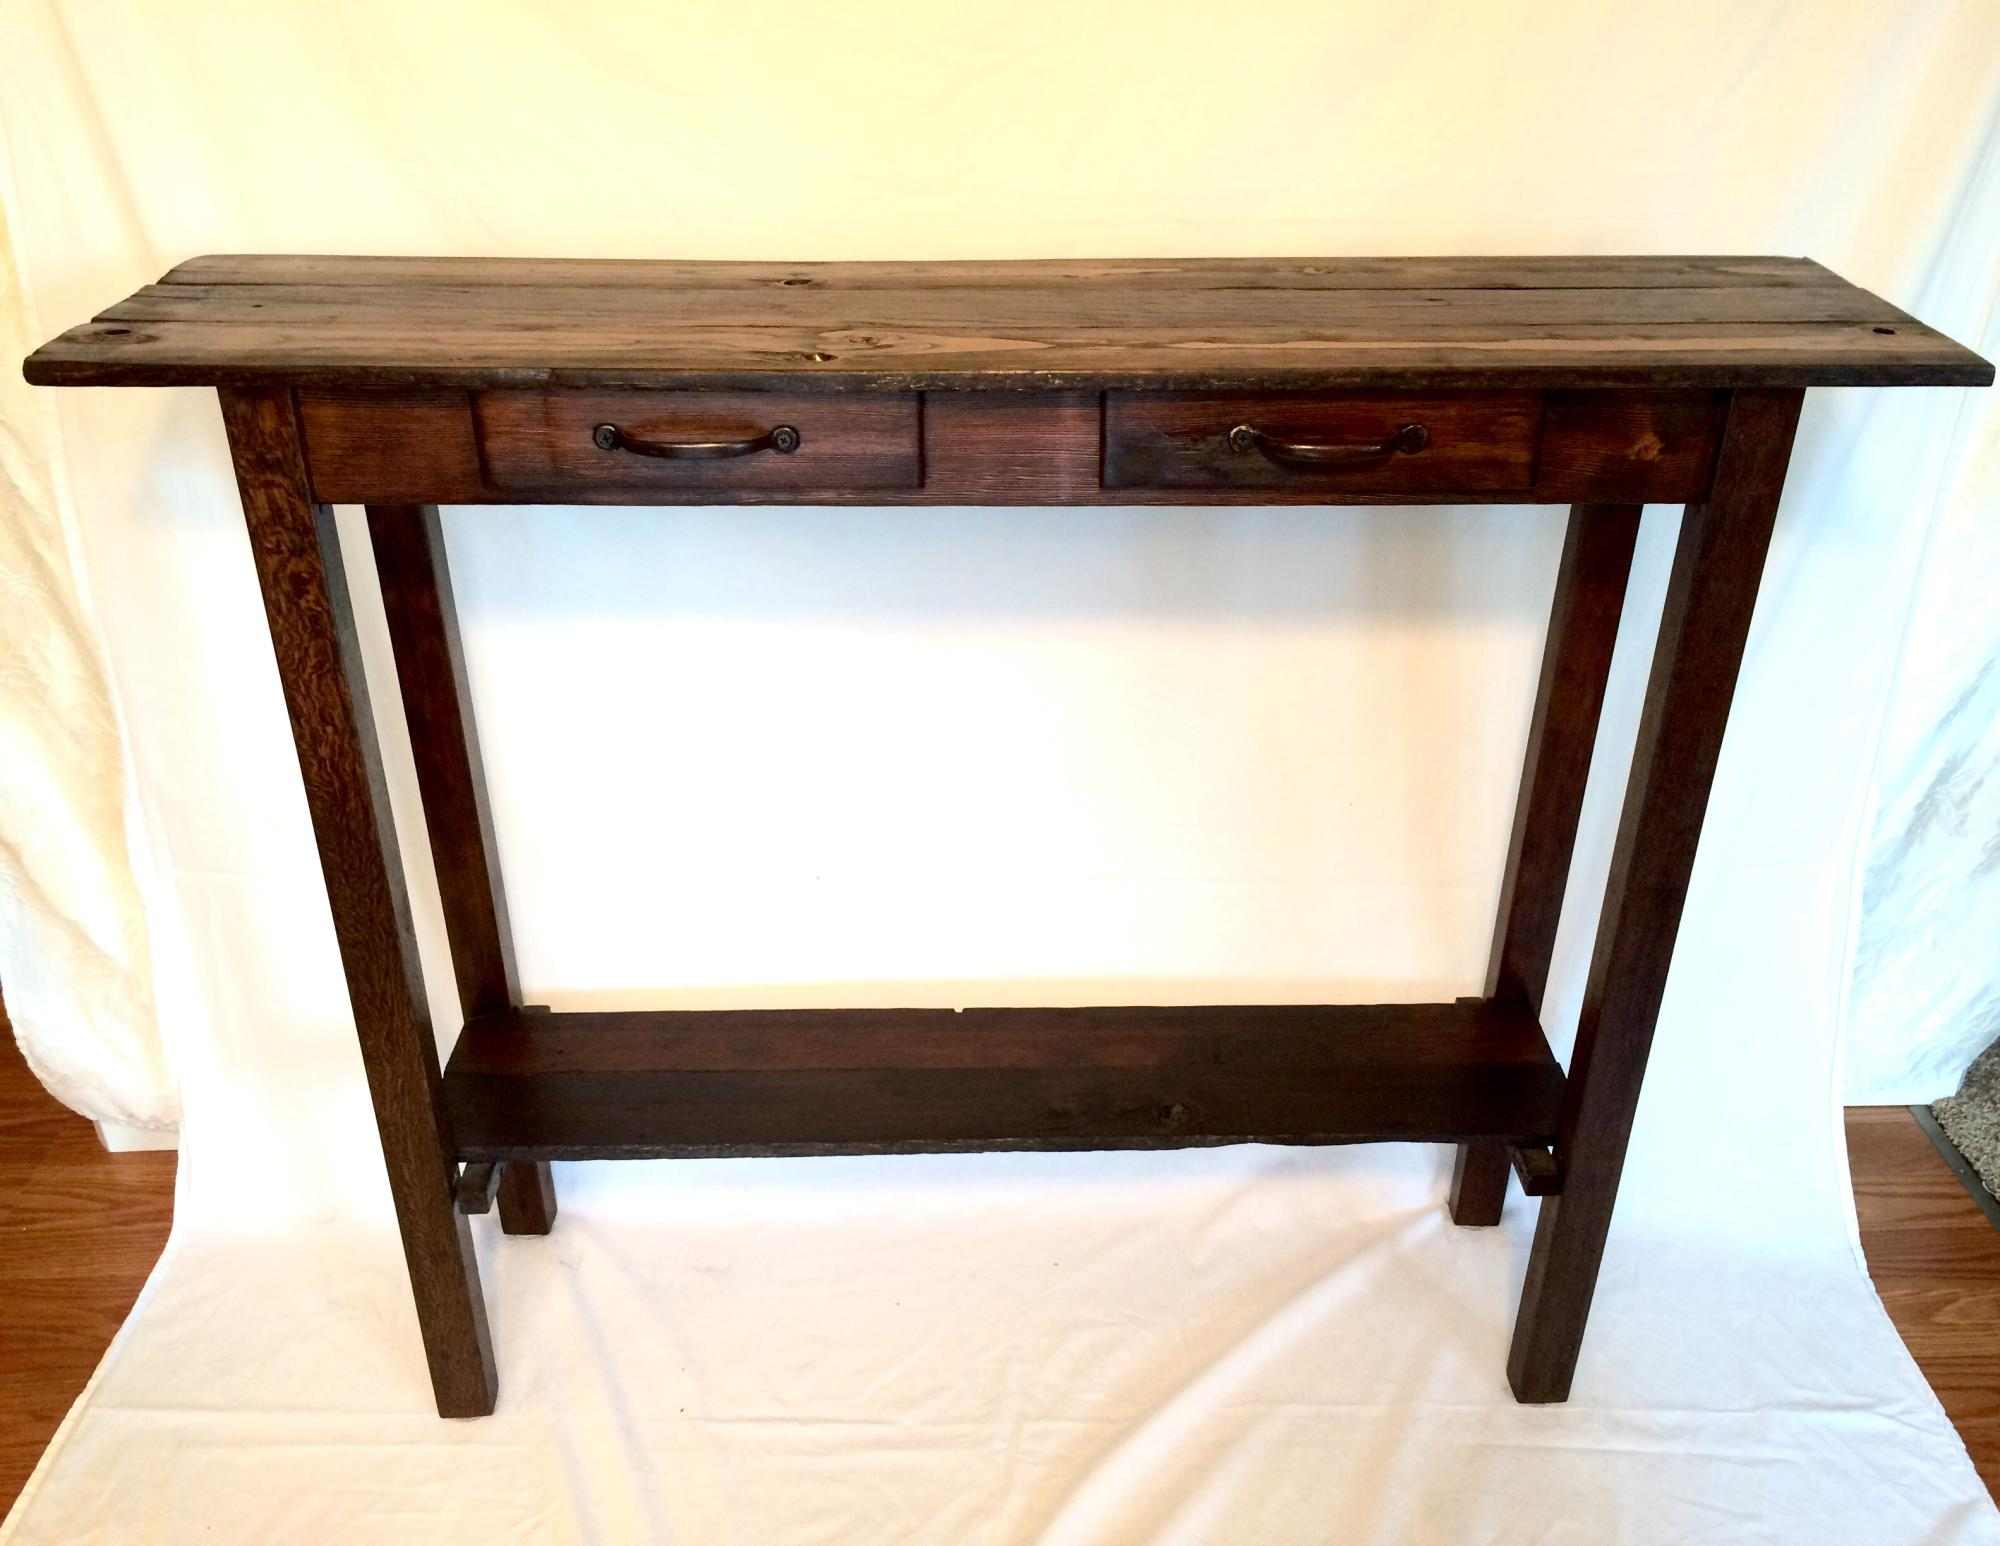 Stained drift lumber mixed wood entry table with faux drawers.  46Lx11Wx36H  $325